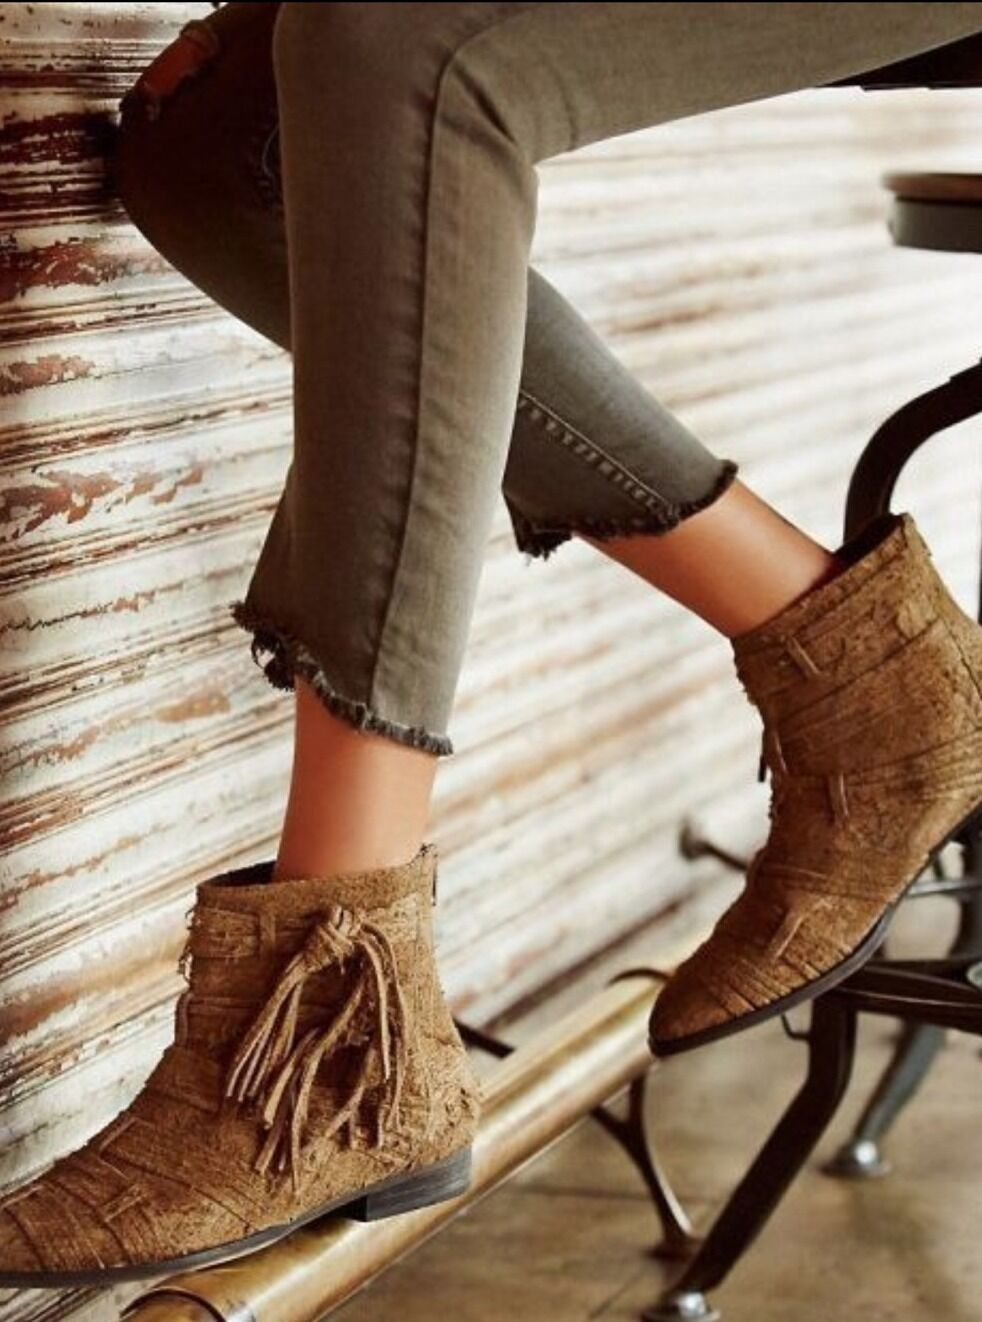 Free People Taupe Distressed Decades Ankle Stiefel Distressed Taupe Suede Booties 36 US 6.5 178.00 a3f2ce